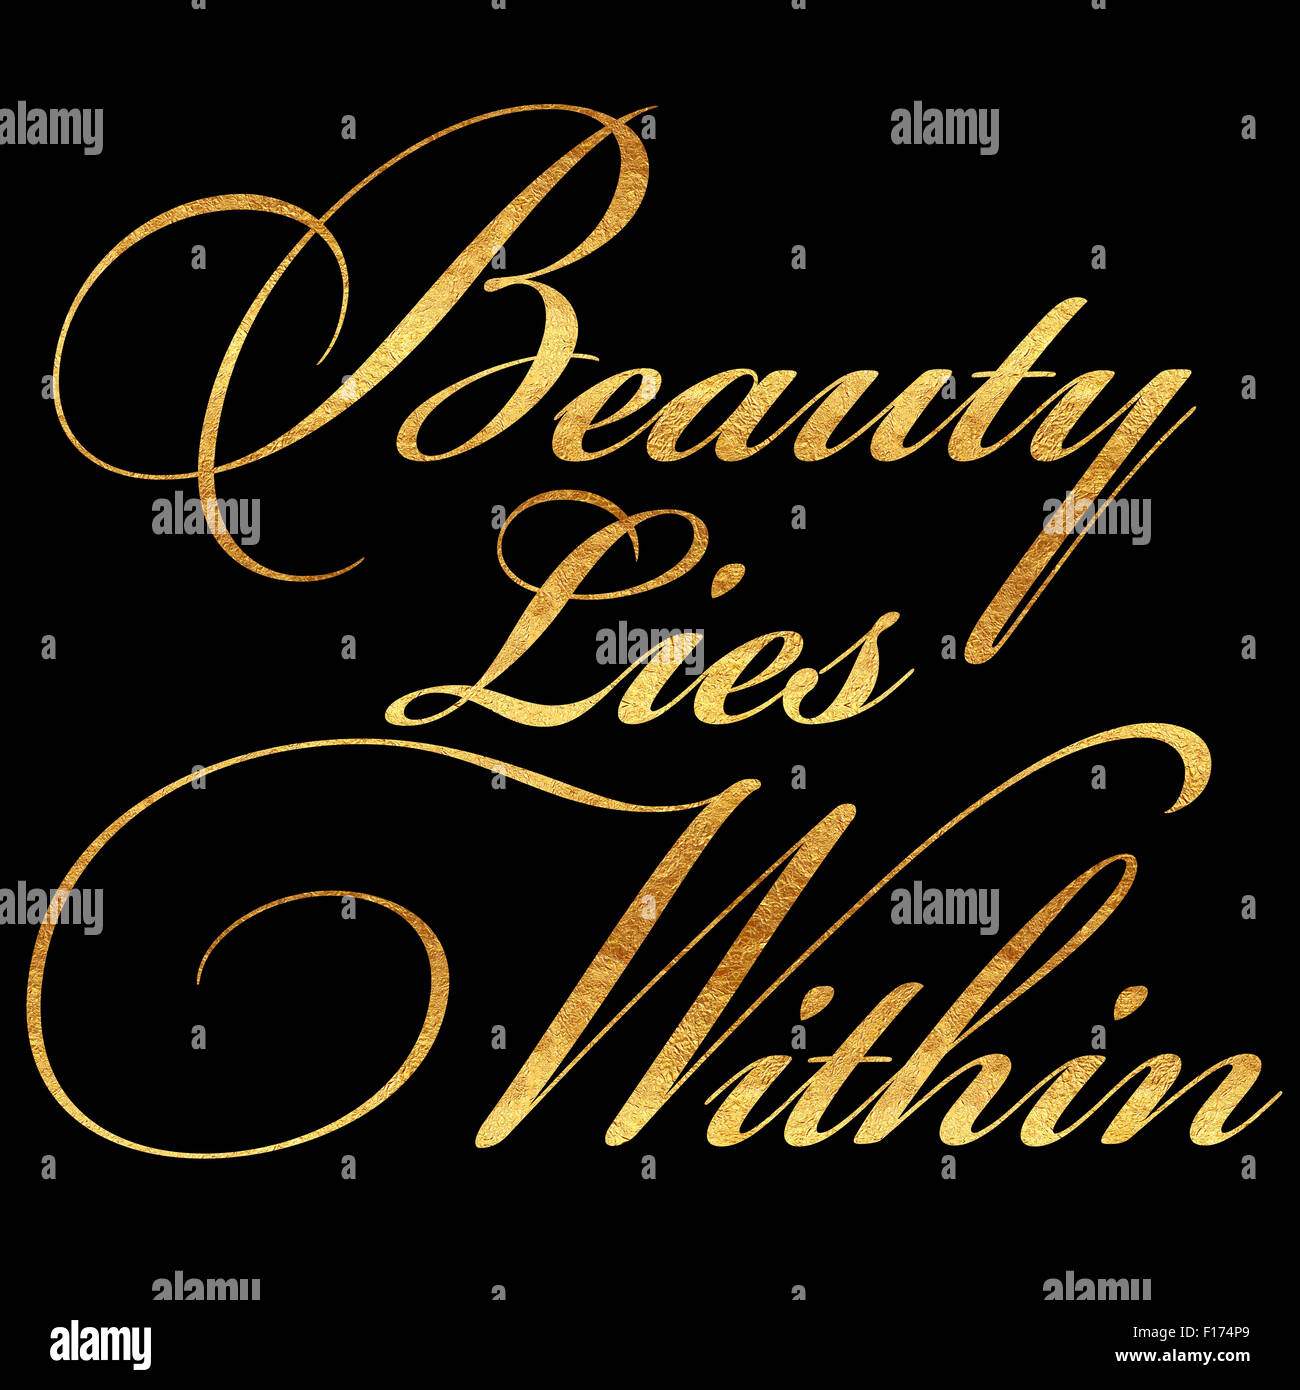 Beauty Lies Within Faux Gold Foil Metallic Shiny Glitter Quote Stock